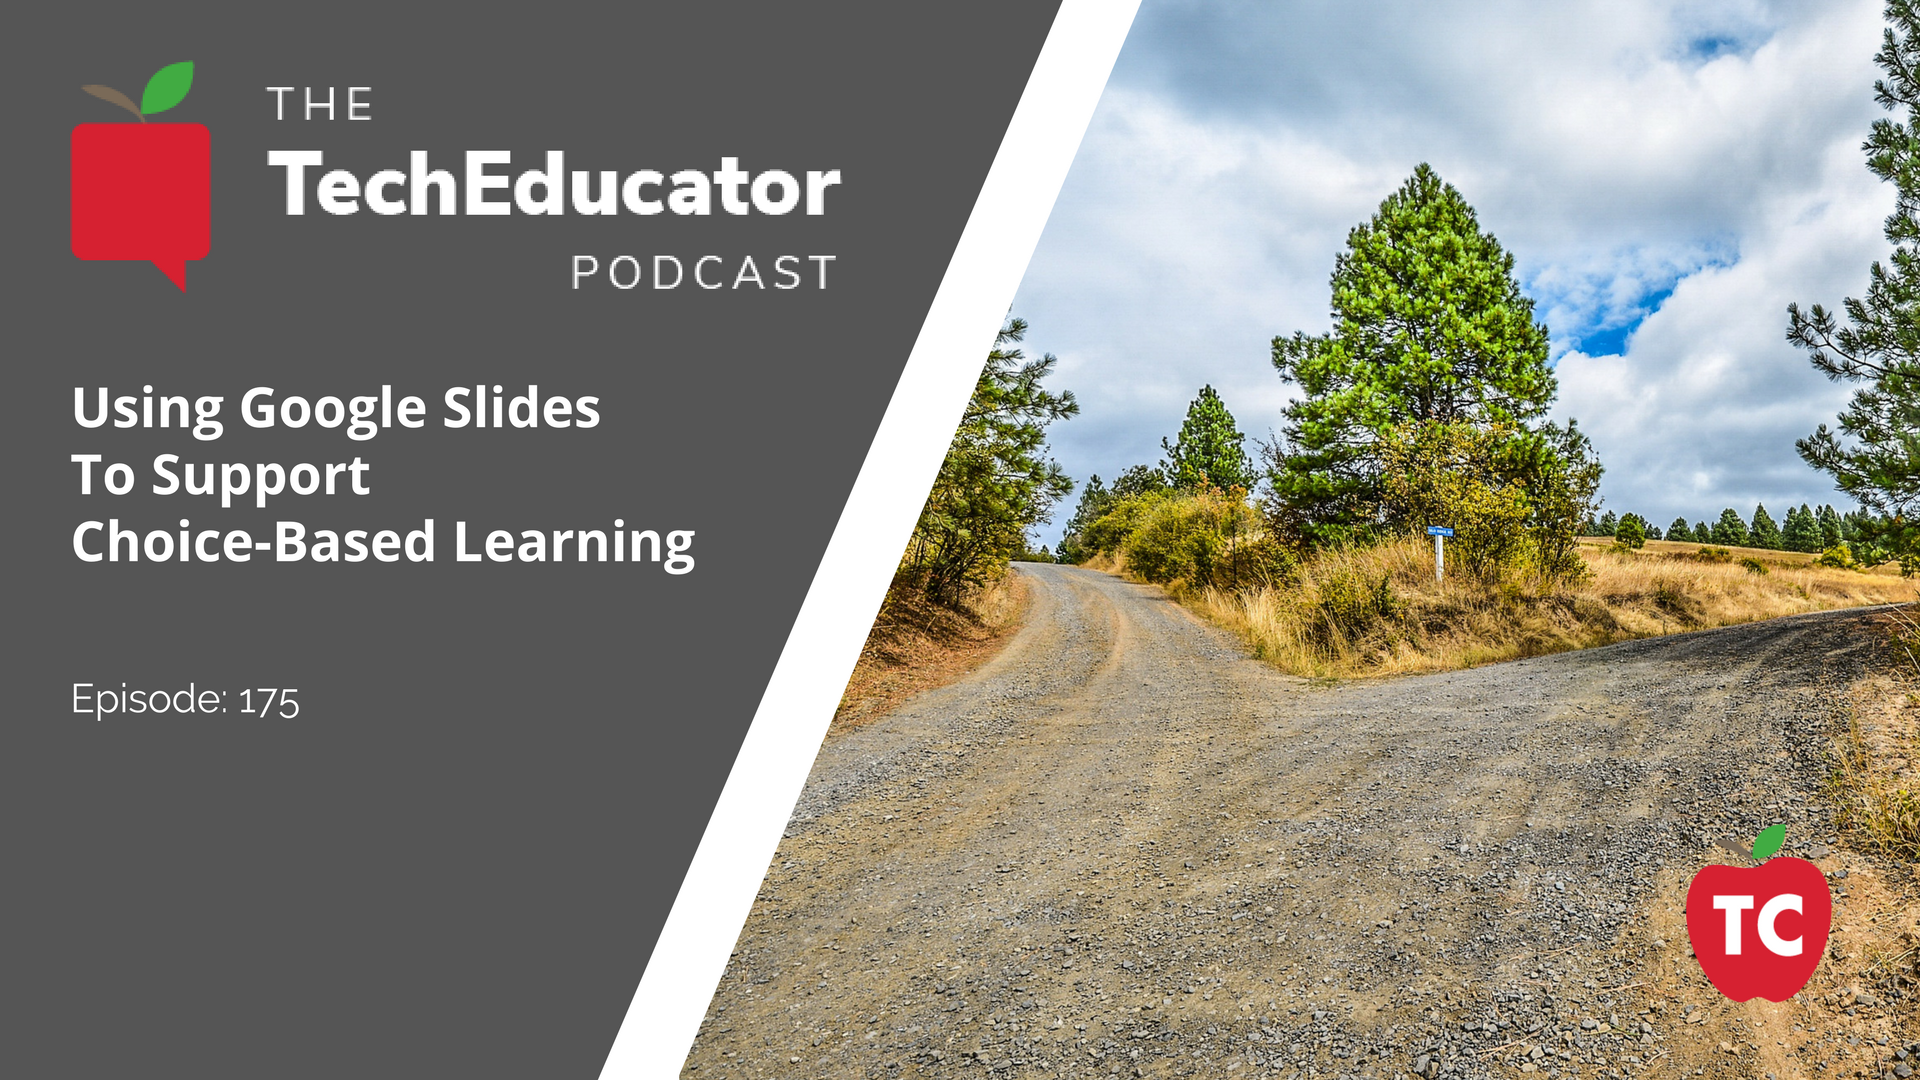 Using Google Slides in a STEM Classroom